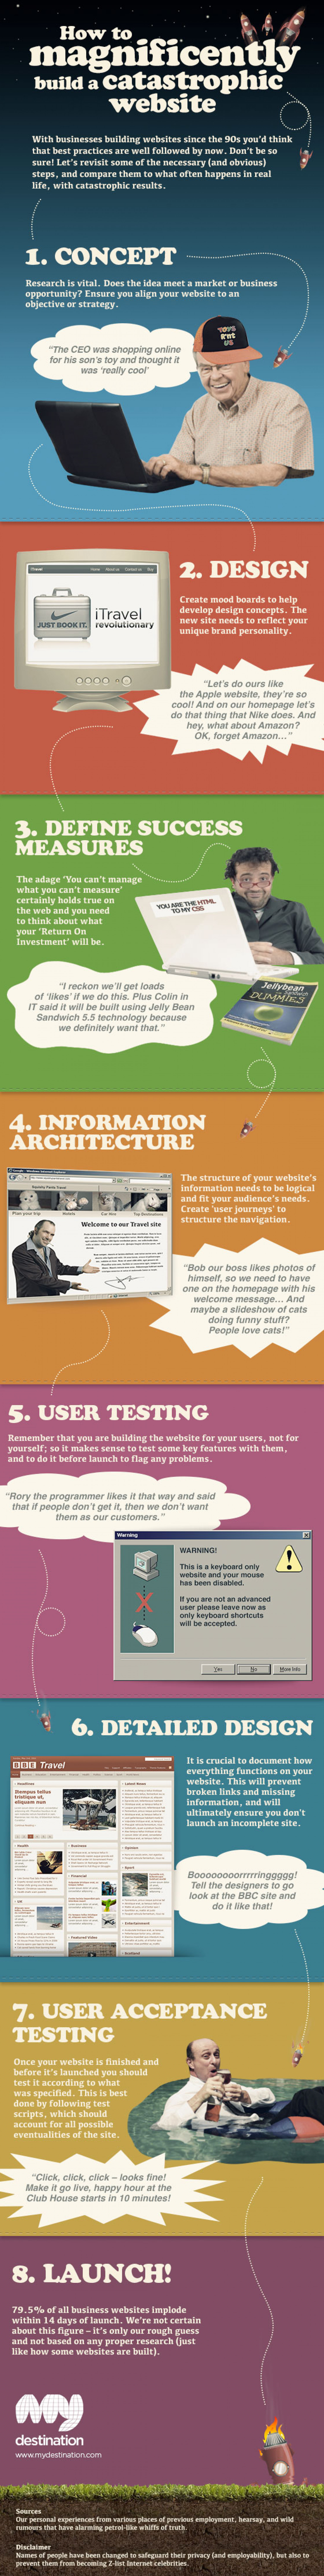 How to Magnificently Build a Catastrophic Website Infographic